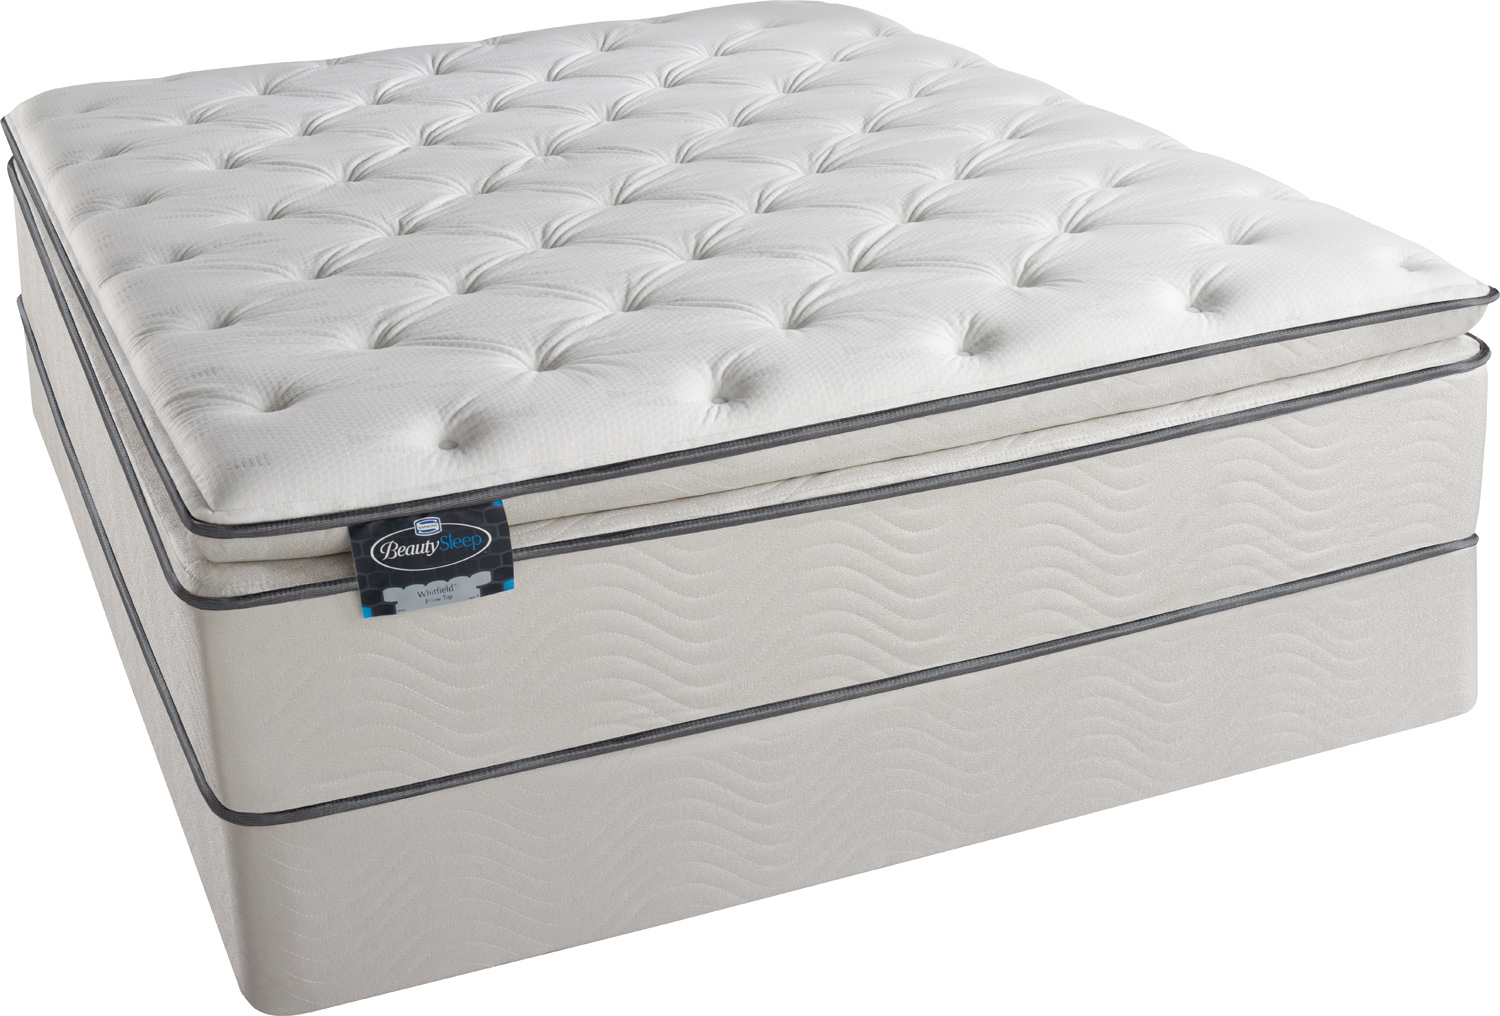 Simmons beautysleep euro pillow top foam encased mattress for Which mattress company is the best